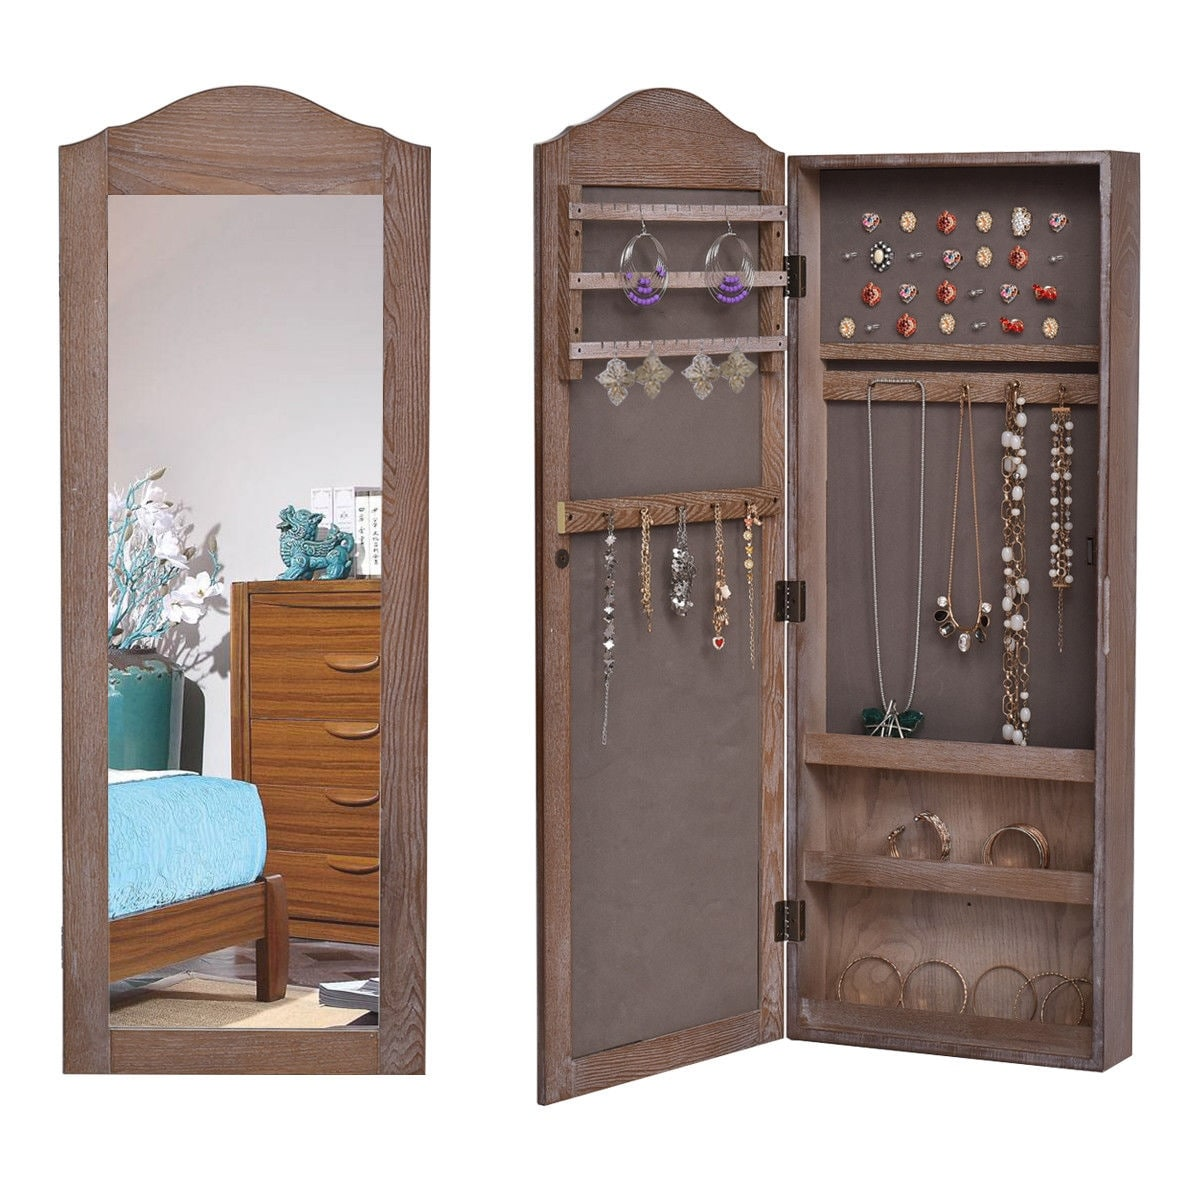 Shop Gymax Mirrored Jewelry Cabinet Armoire Storage Organizer Wall Hanging Overstock 22894242